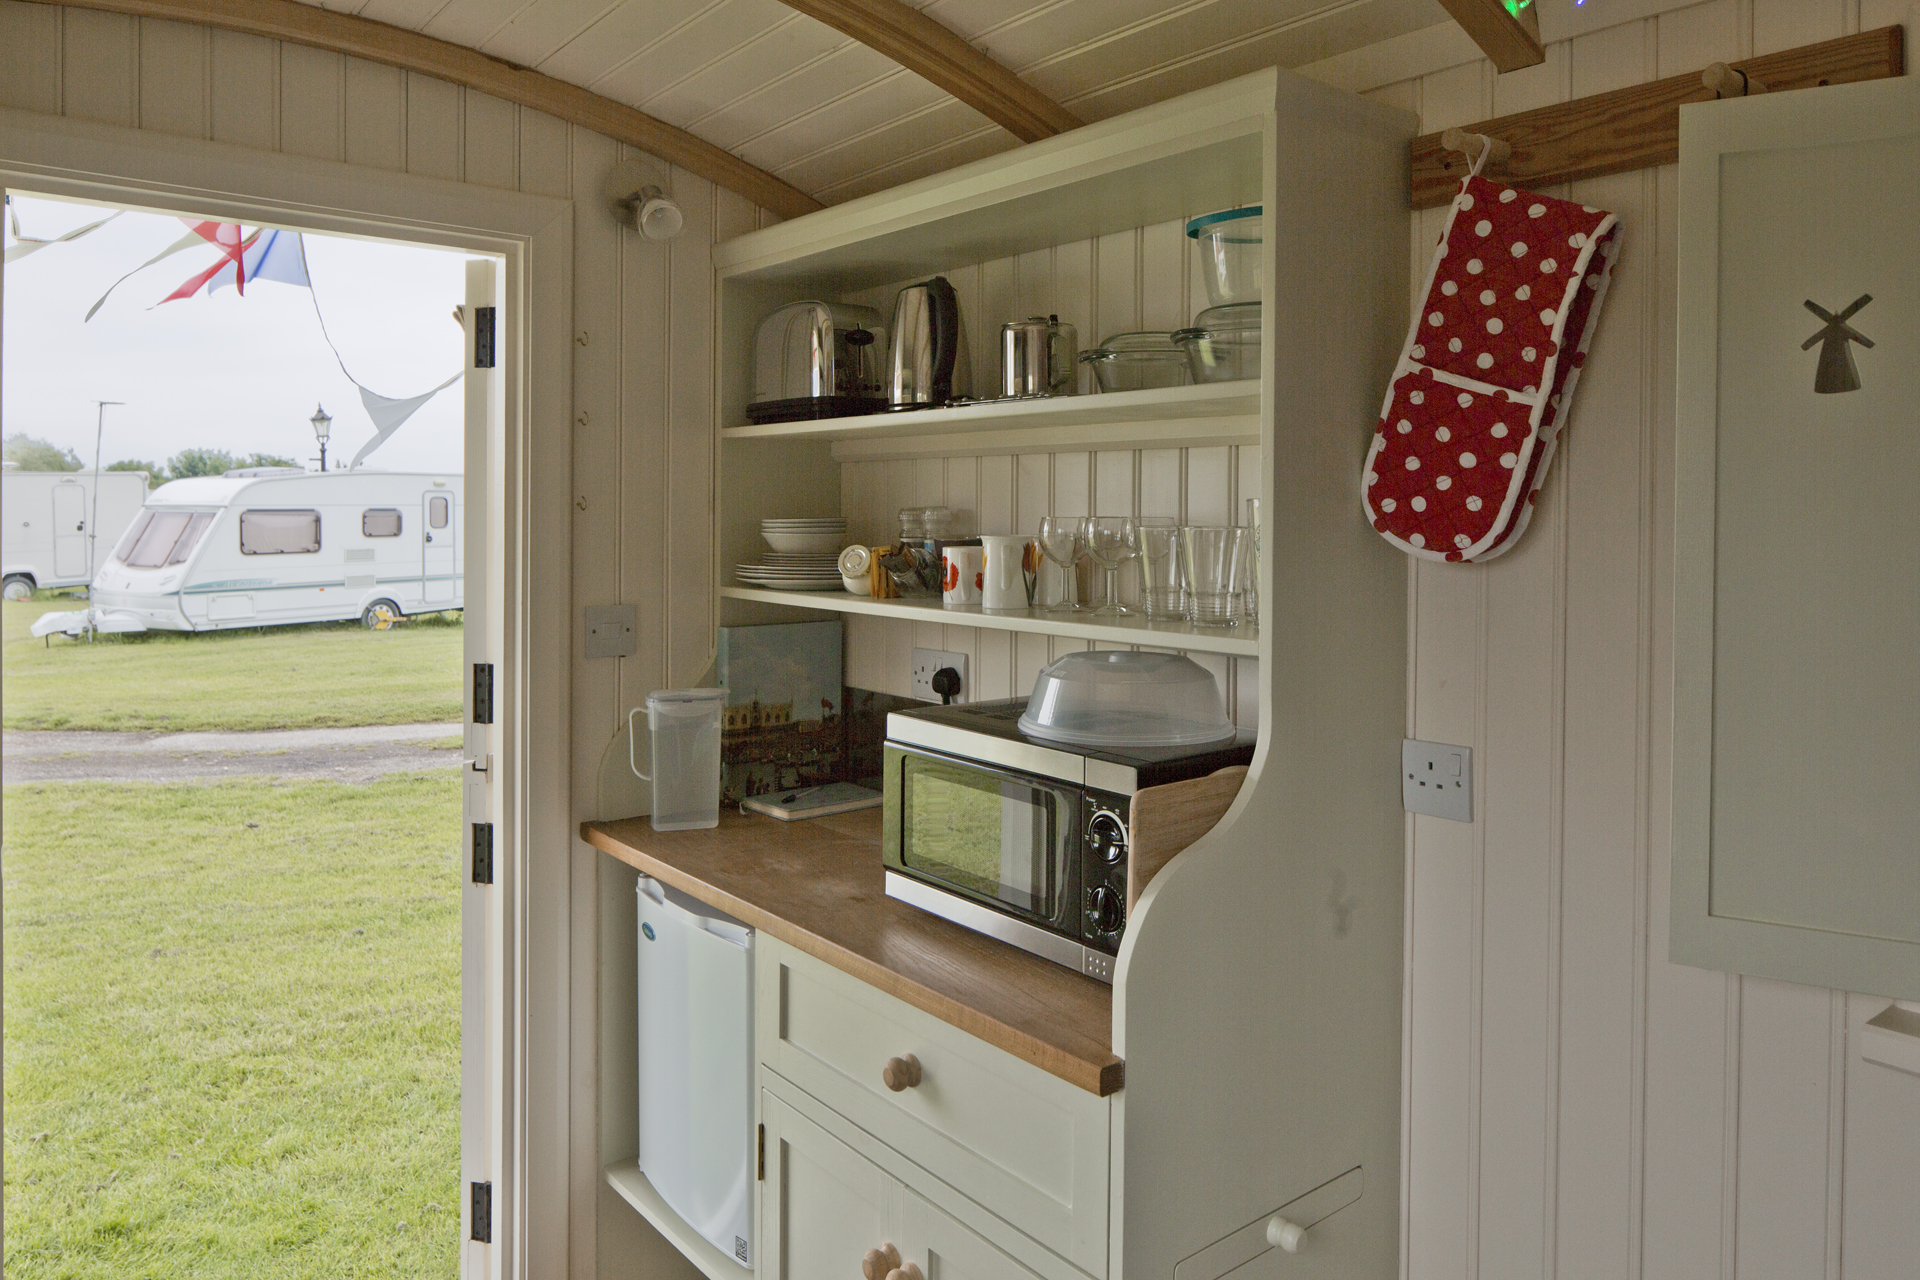 118A3871lrMill Farm Shepherds Hut